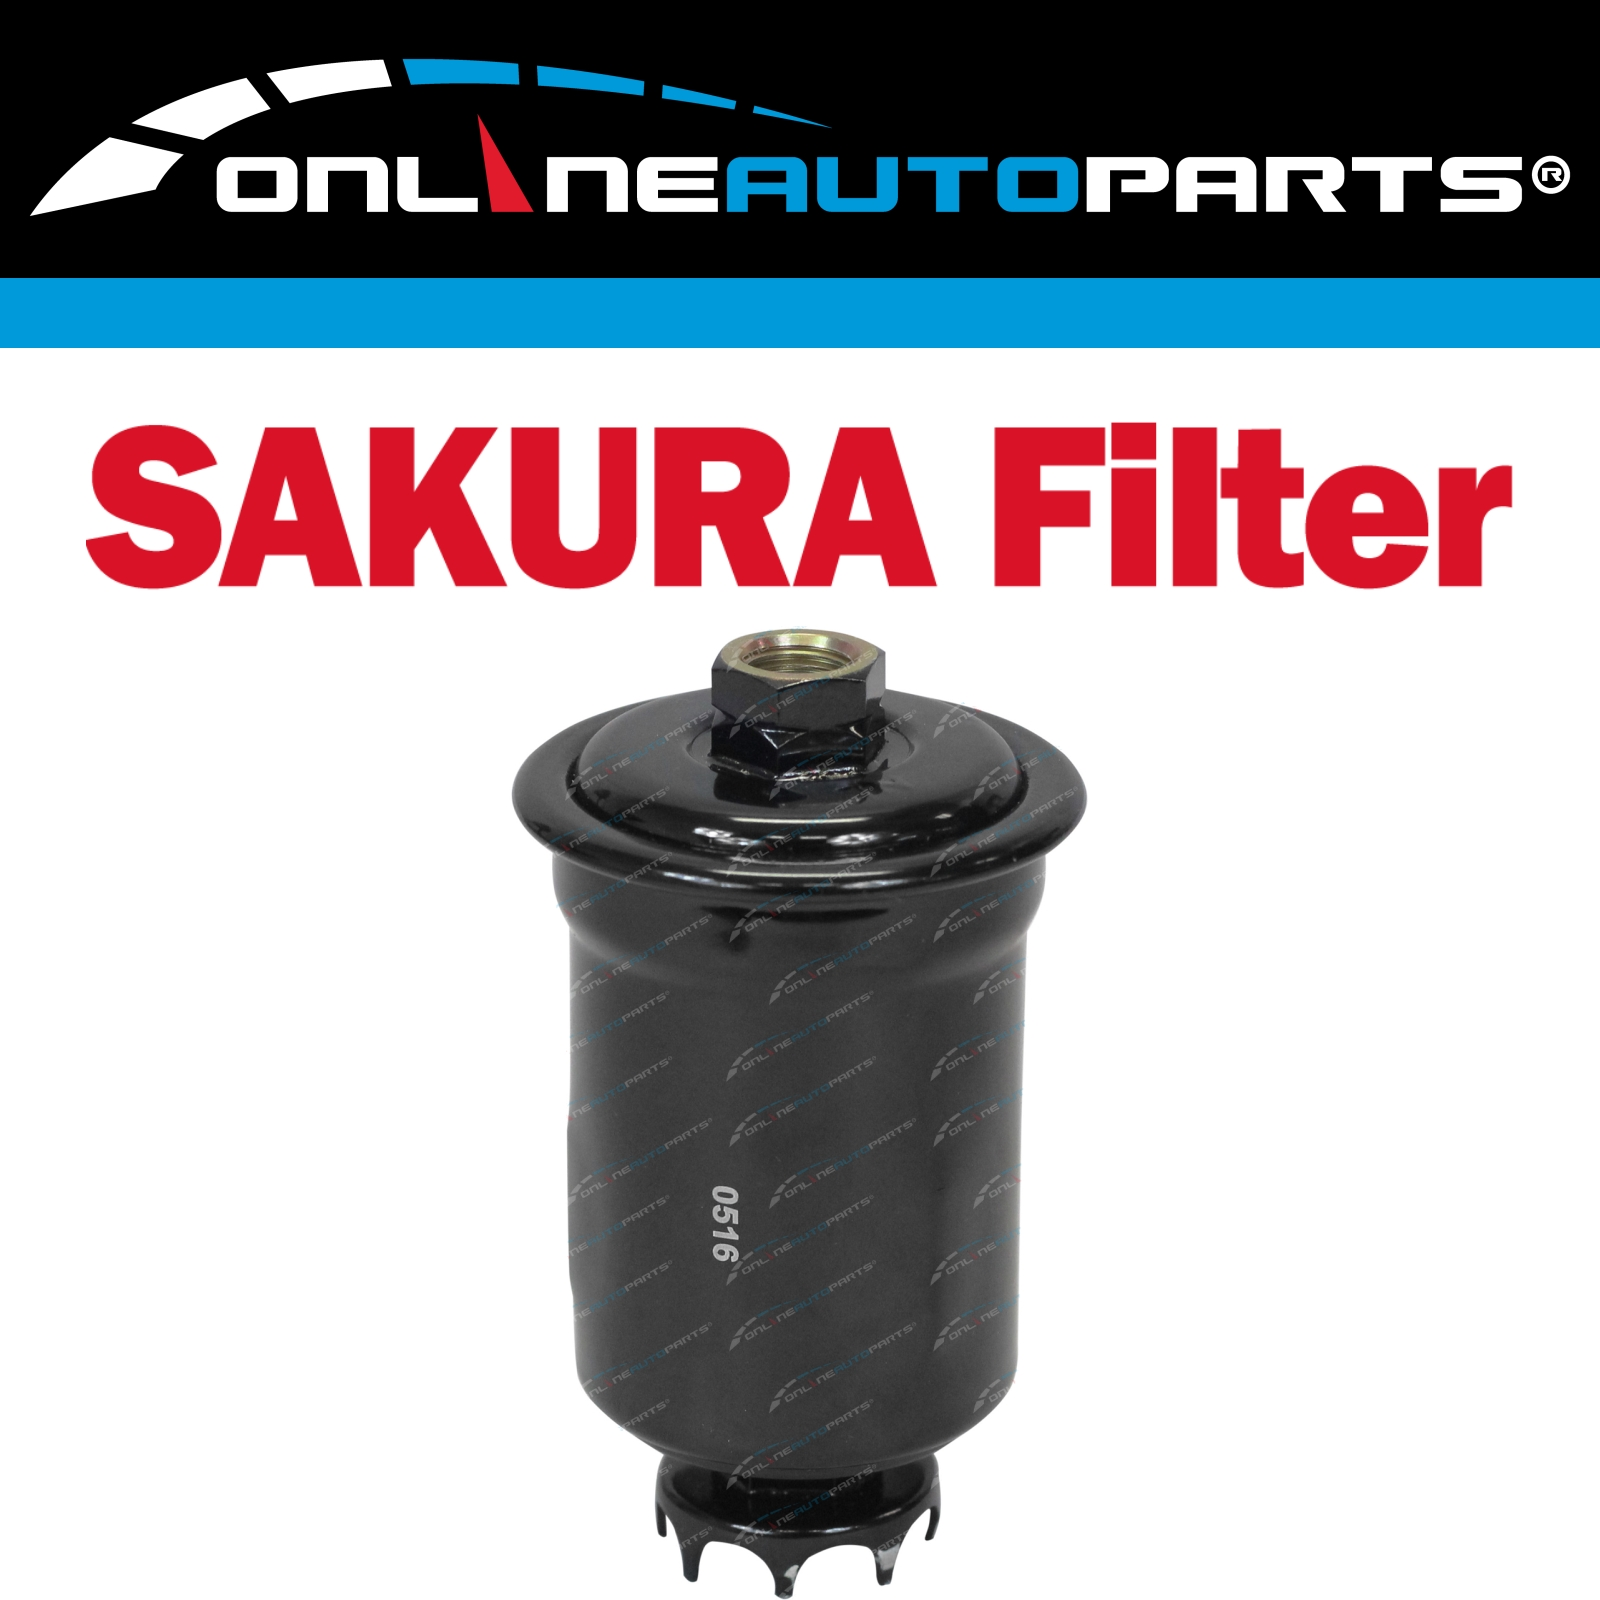 Fuel Filter for Holden Apollo 2.0L 1989-1993 WZ316 Z316